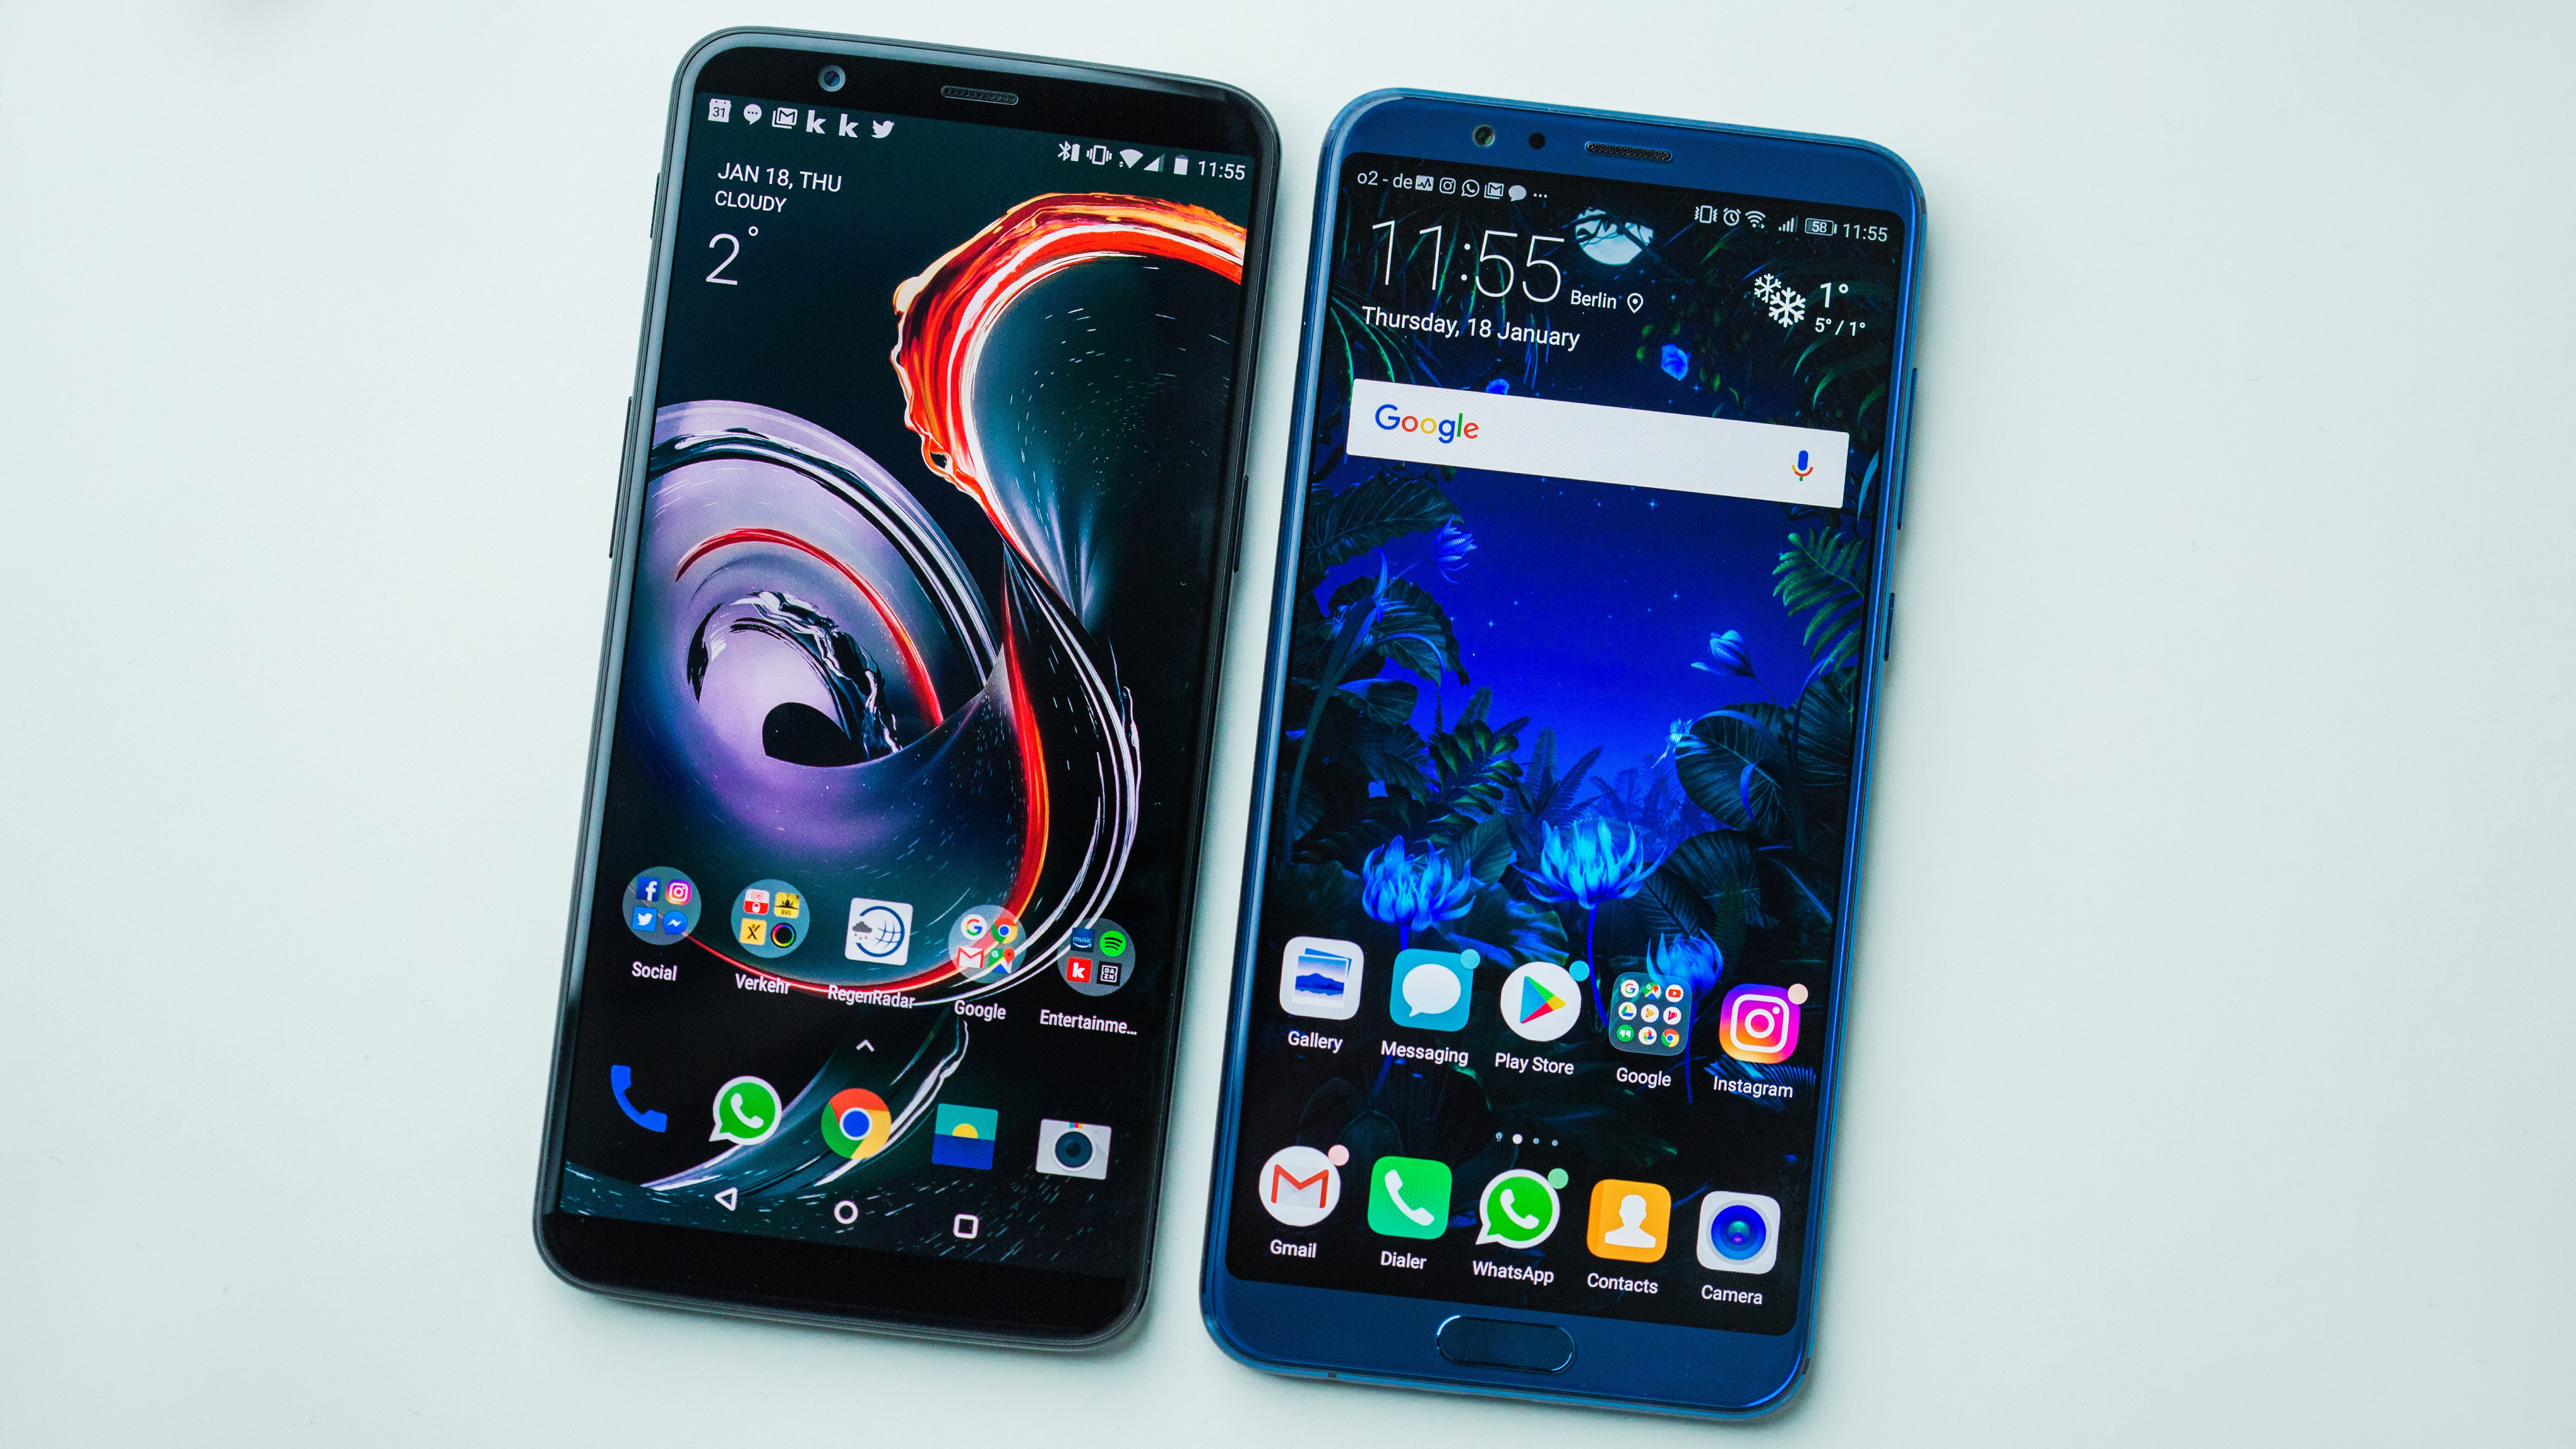 OnePlus 5T vs. Honor View 10: The final shootout